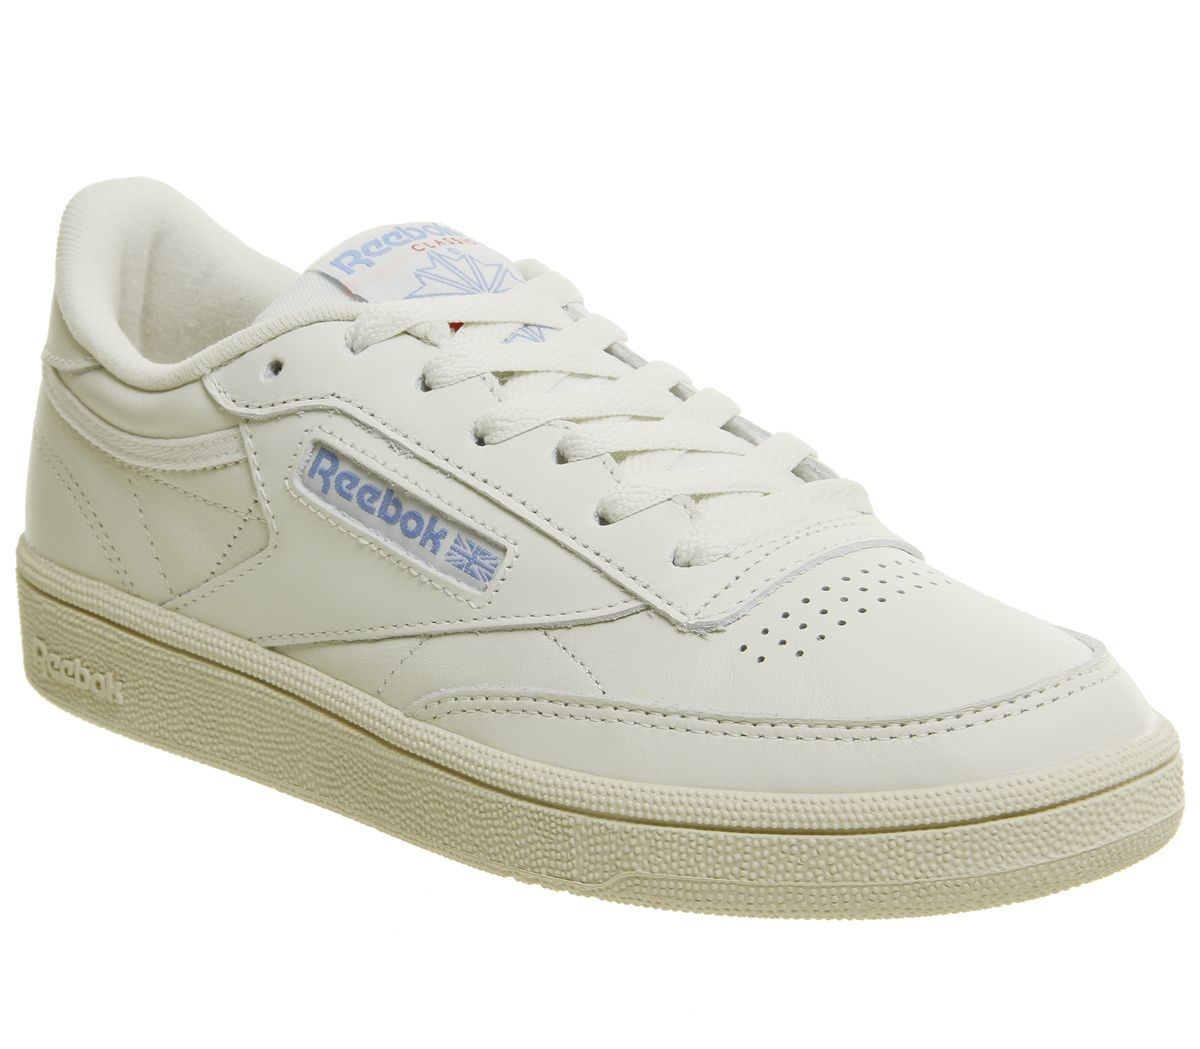 f2051576e5ba2 Reebok Club C 85 Trainers Vintage Chalk Paper White Athletic Blue ...